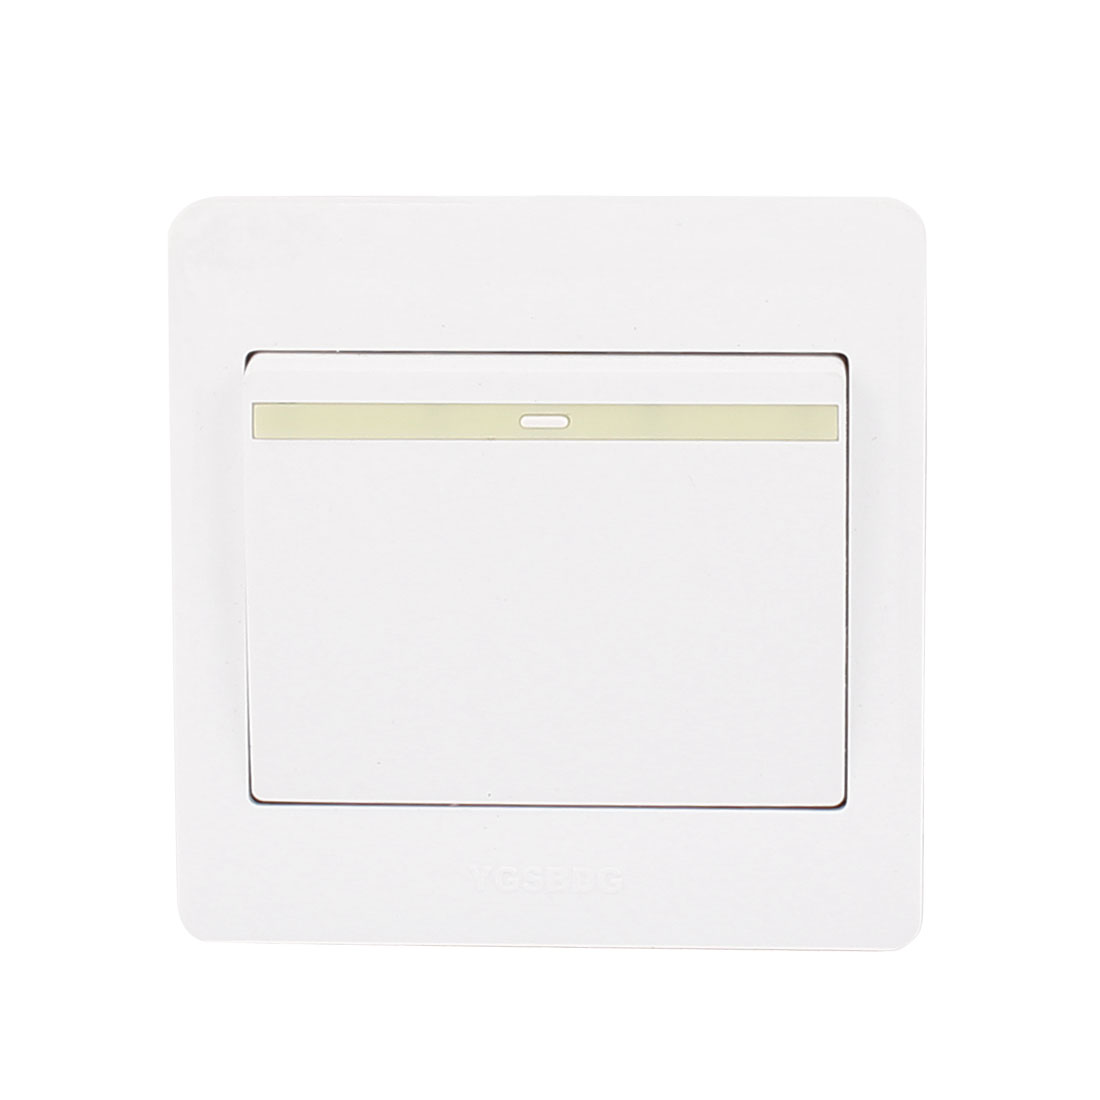 AC 250V 10A 1 Gang 1 Way On/Off 86Type Plastic Housing Wall Light Switch